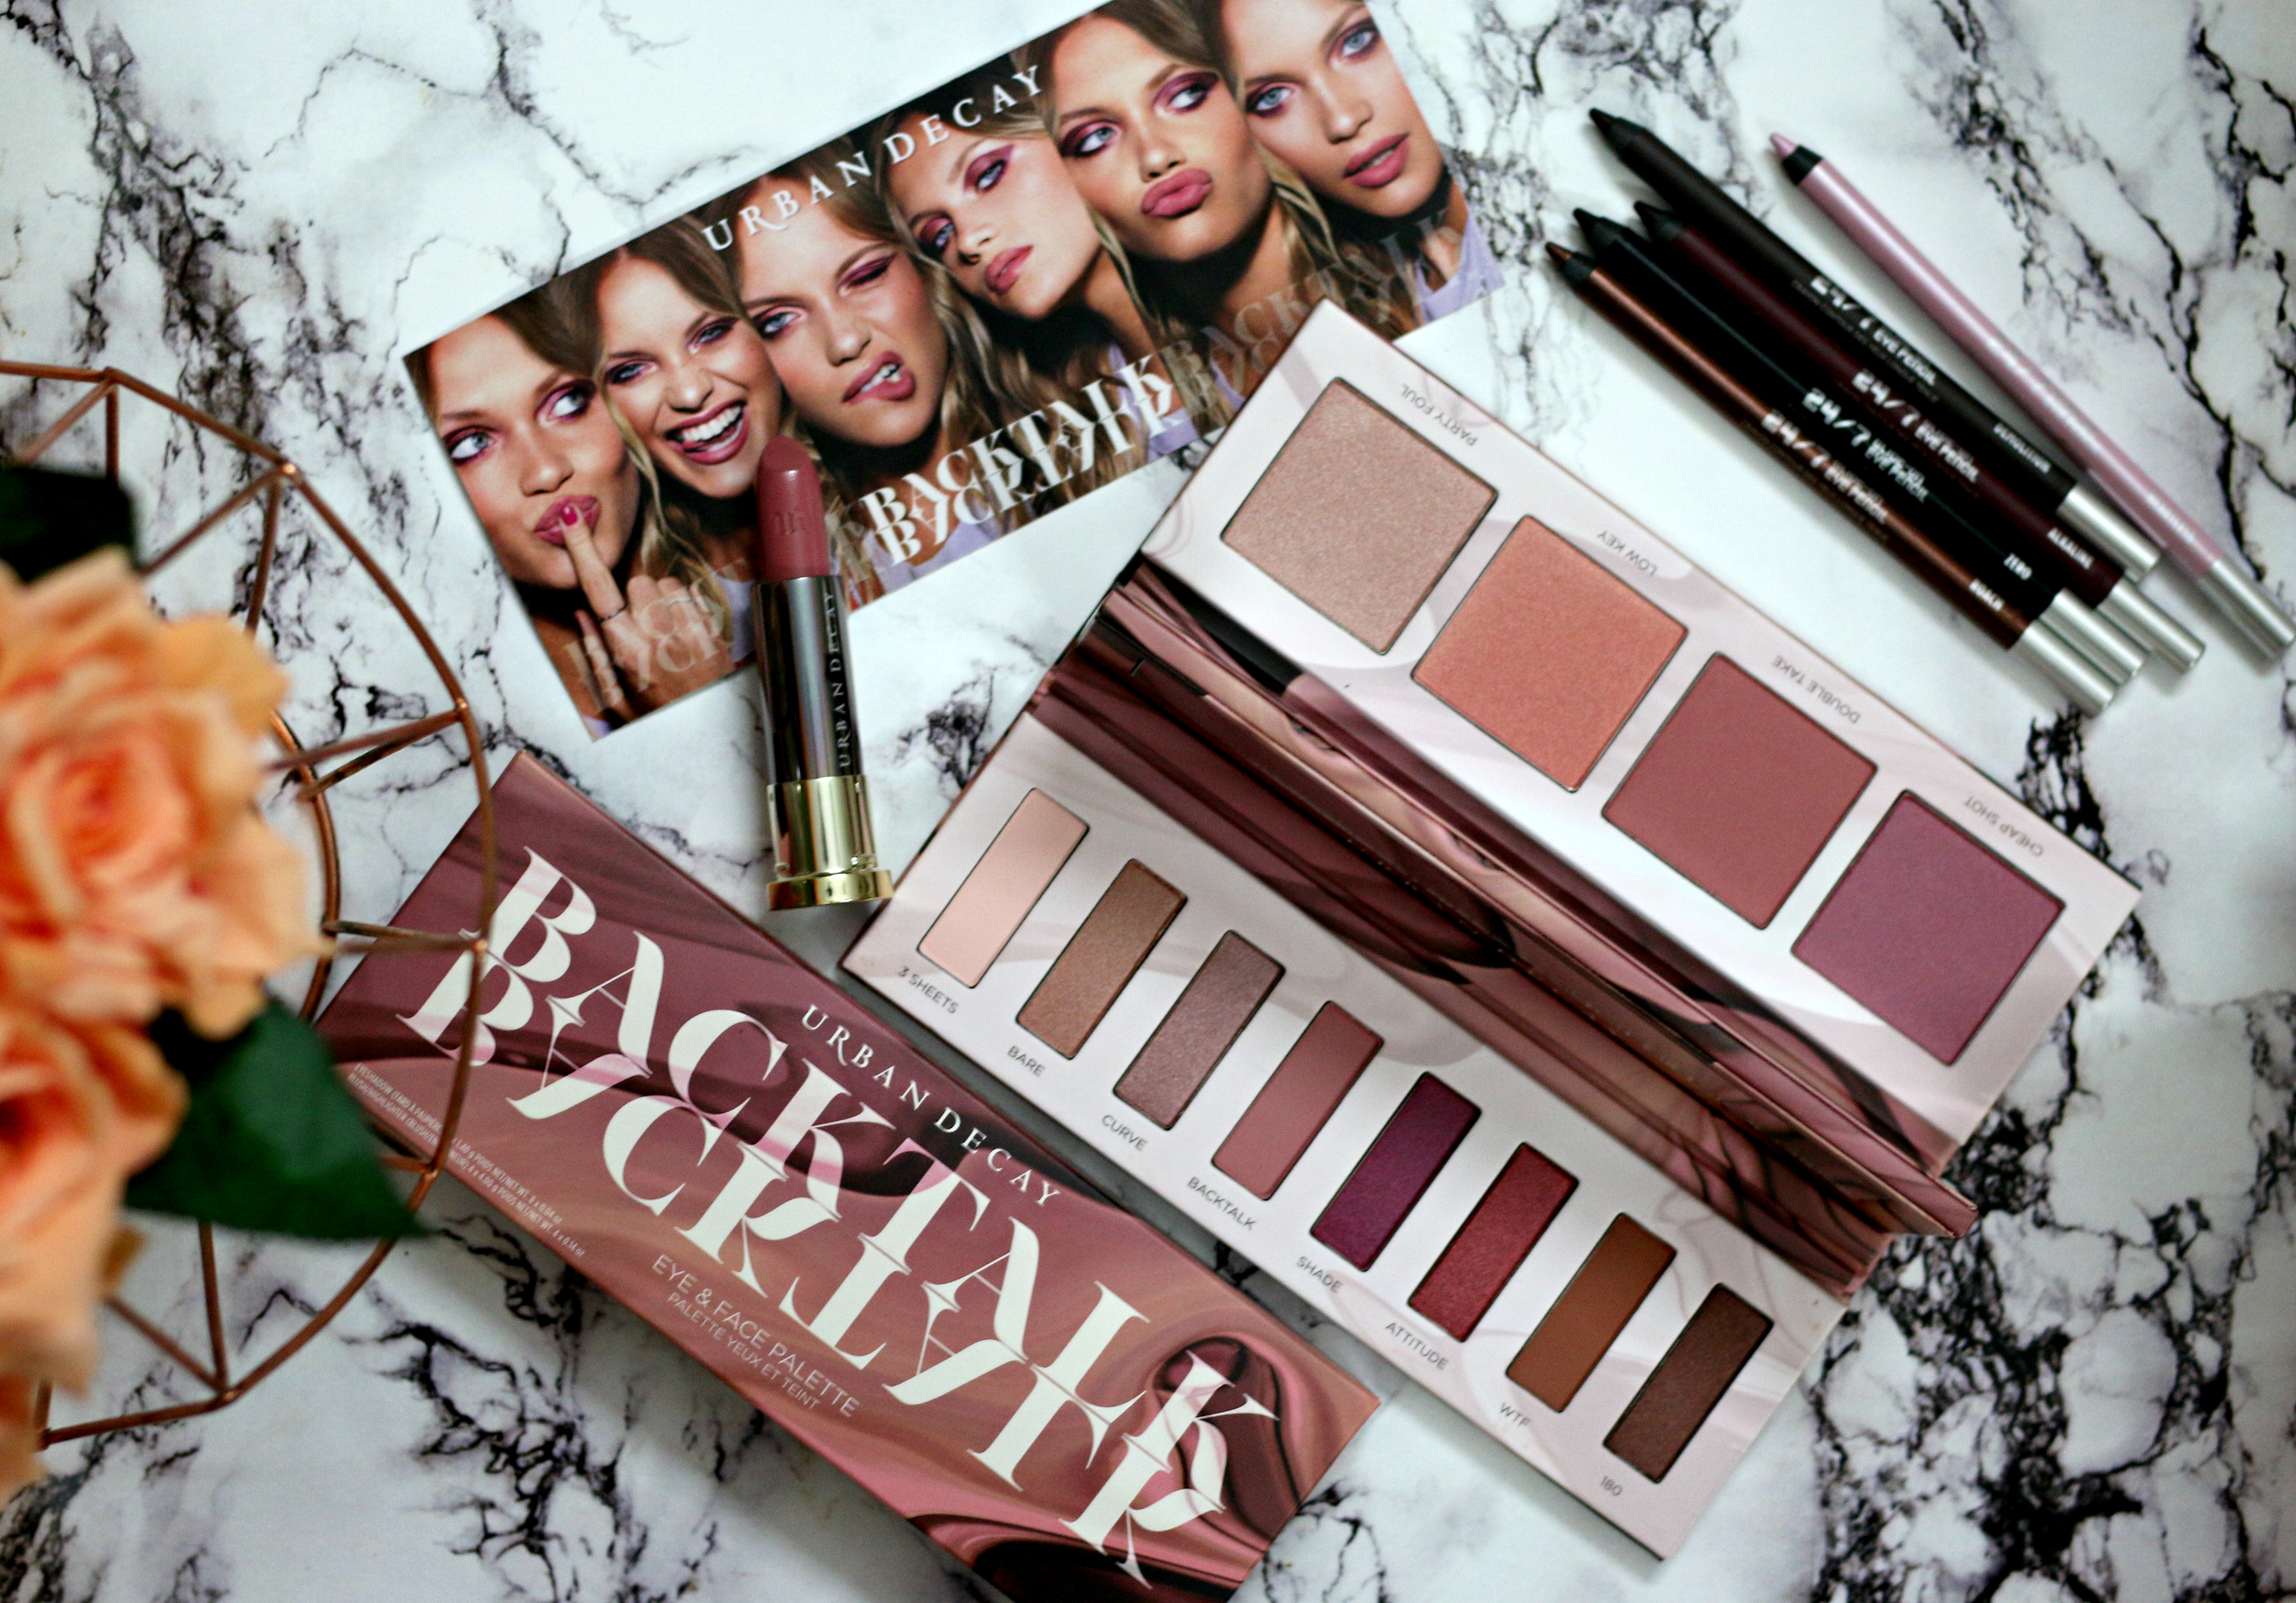 Urban Decay Backtalk Palette | Monochromatic Eyeshadow and Blush Palette | Review & Swatches